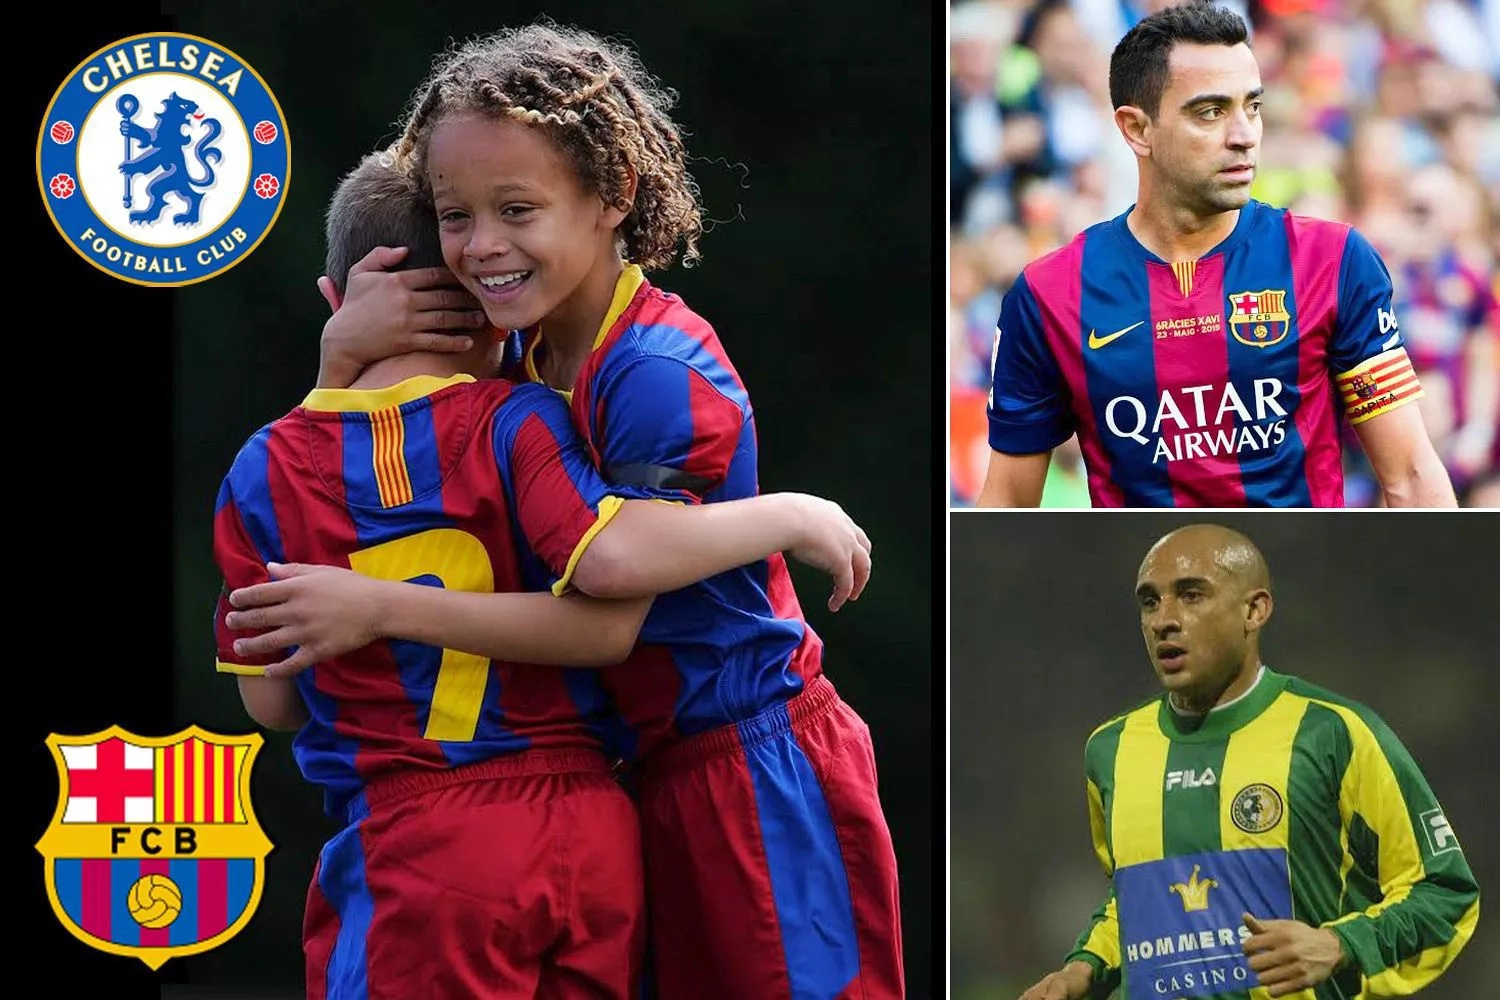 Chelsea want to sign 12-year-old boy Xavi from Barcelona